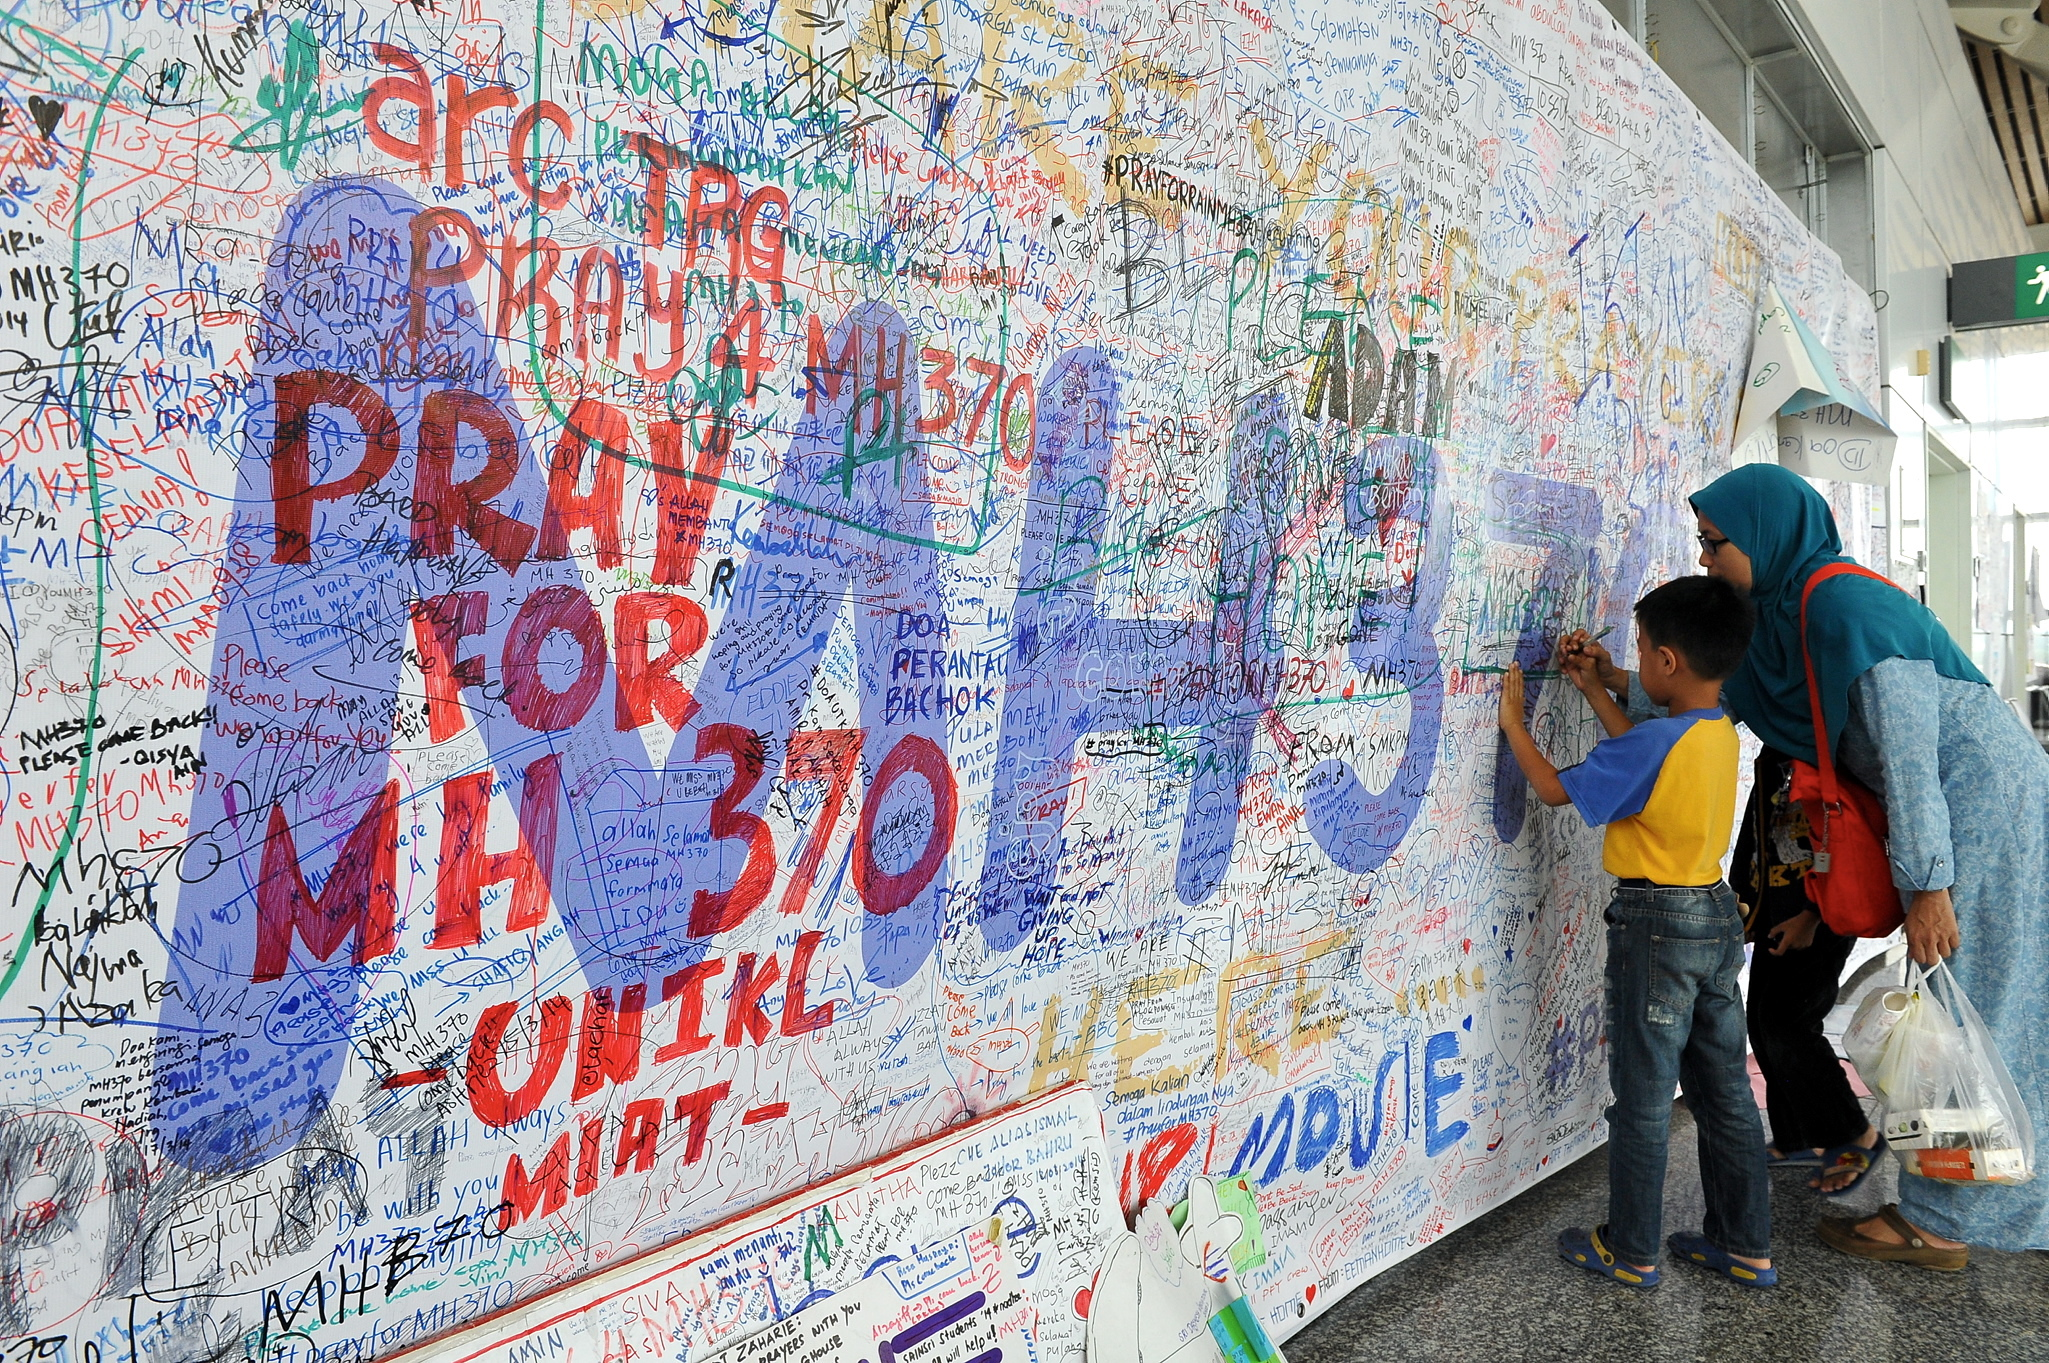 Will we ever know what became of MH370? Credit: PA